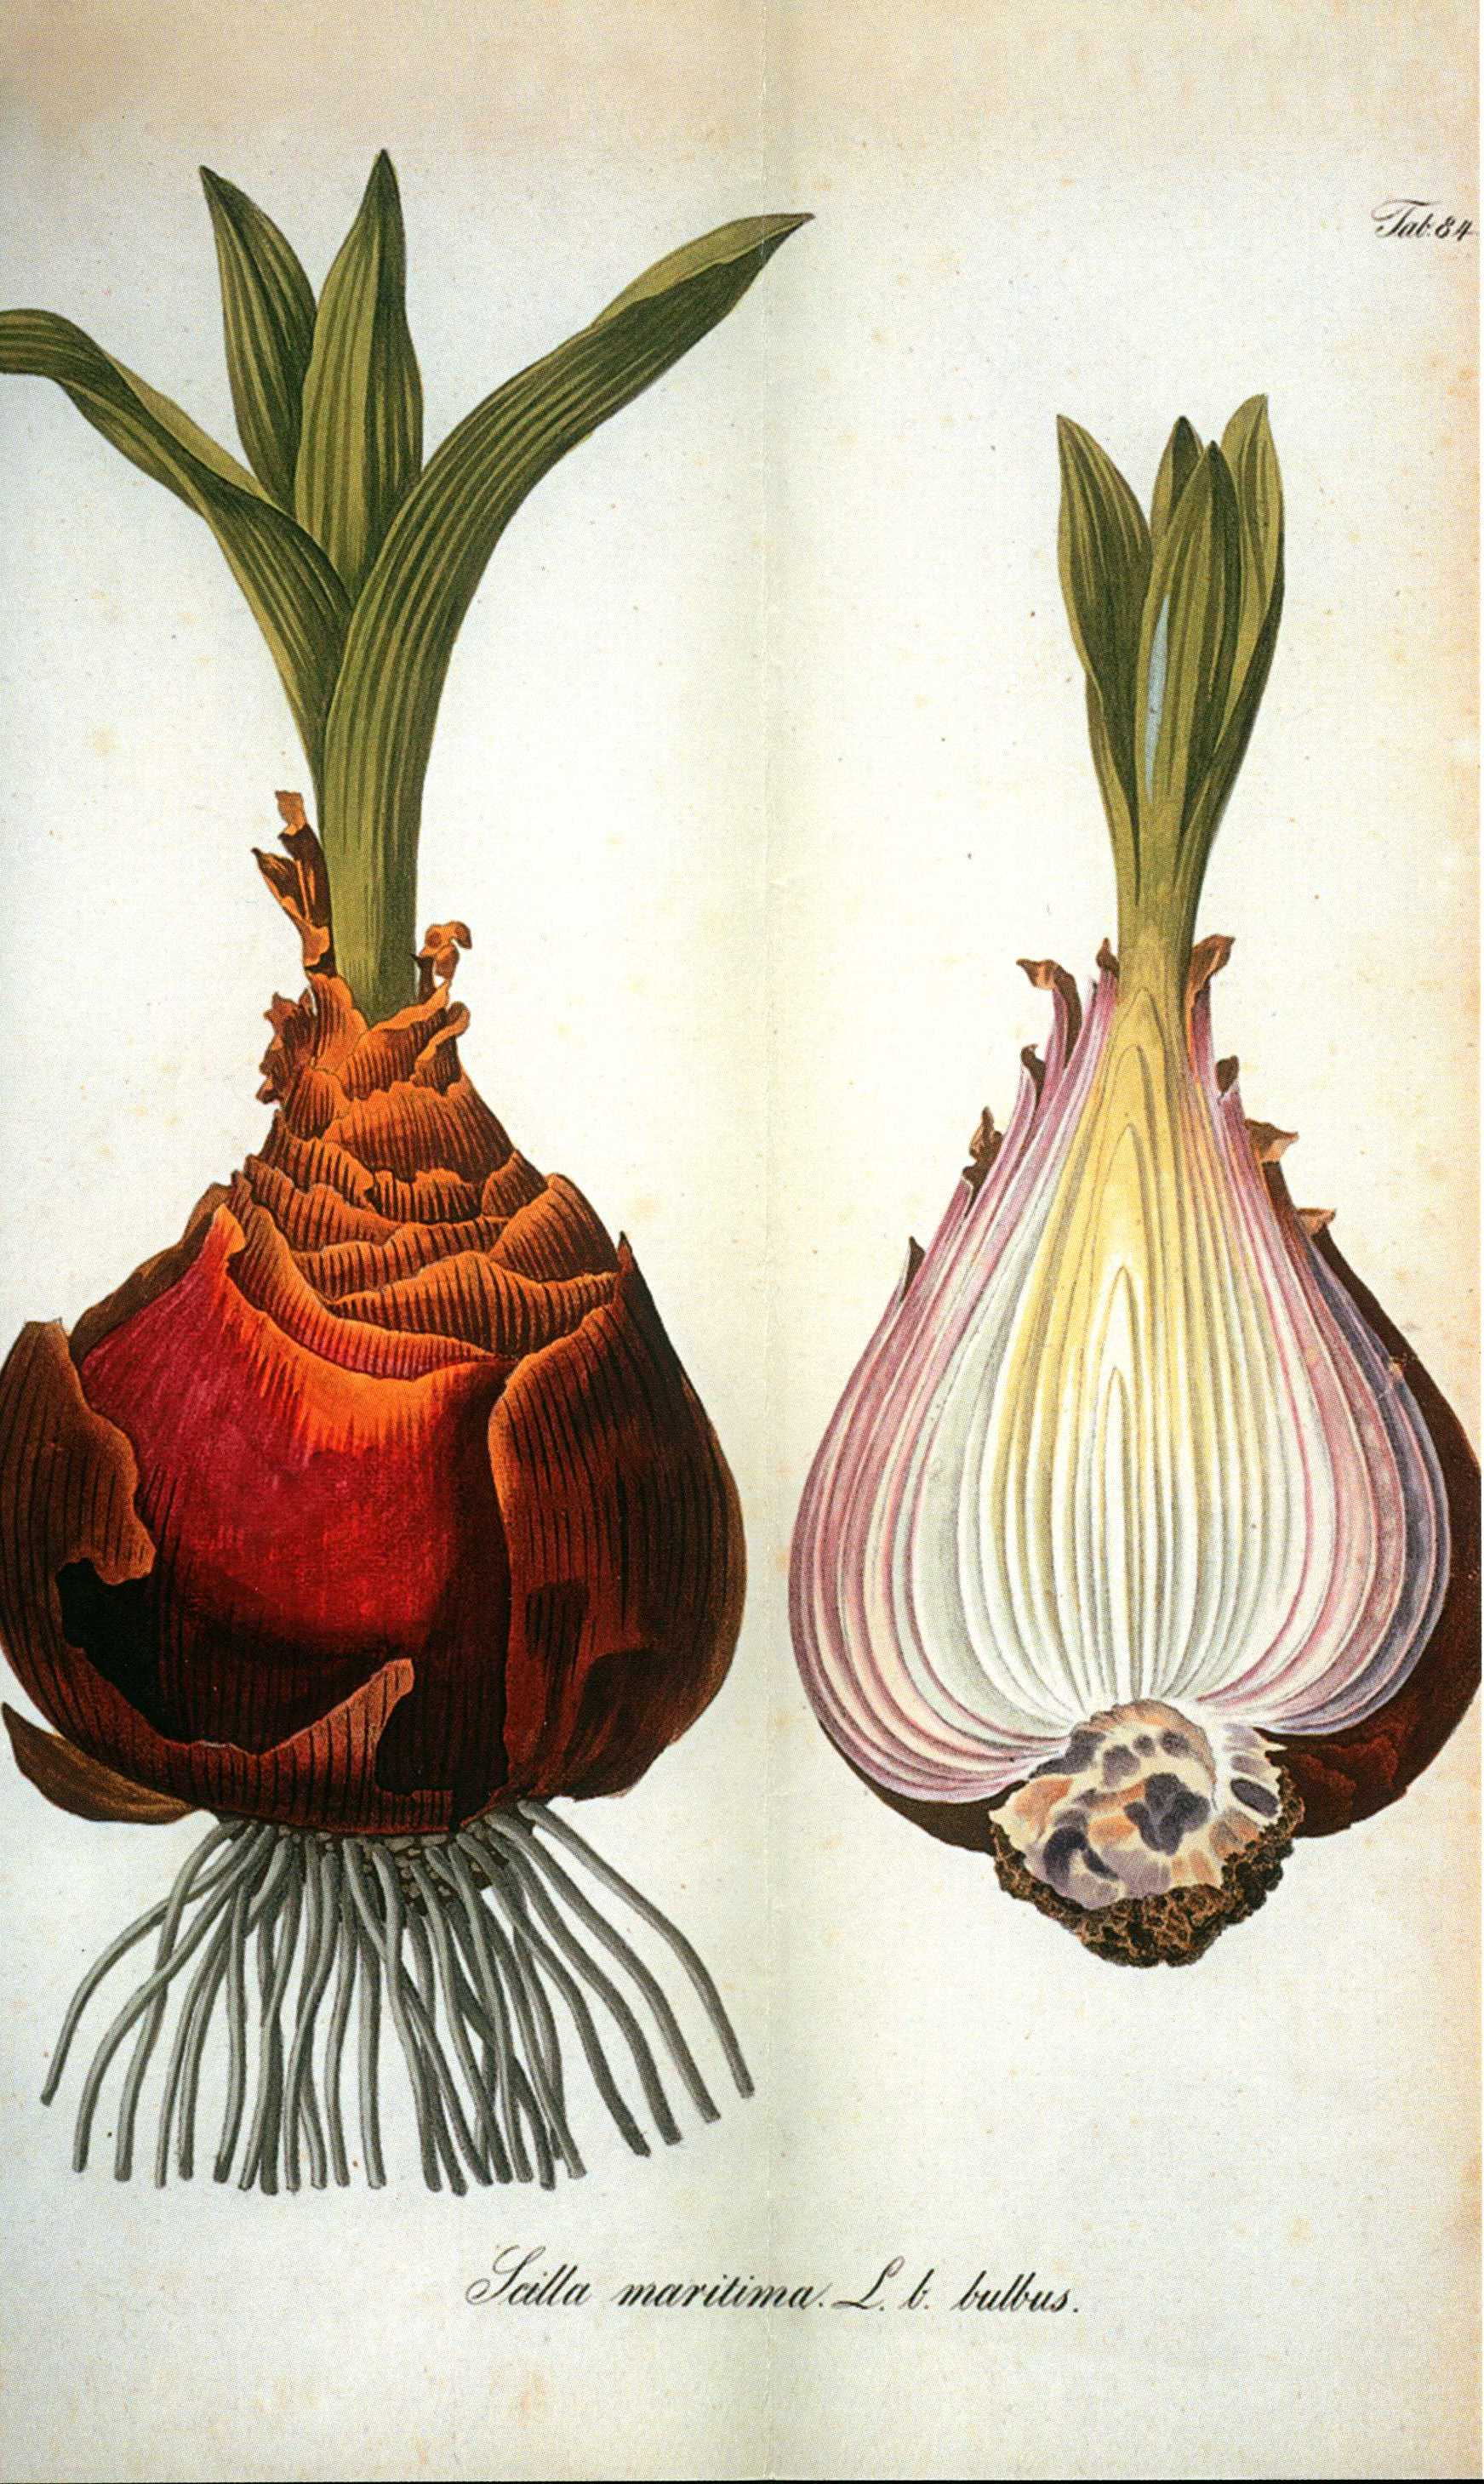 Scilla maritima bulb and cutaway view showing bulb interior